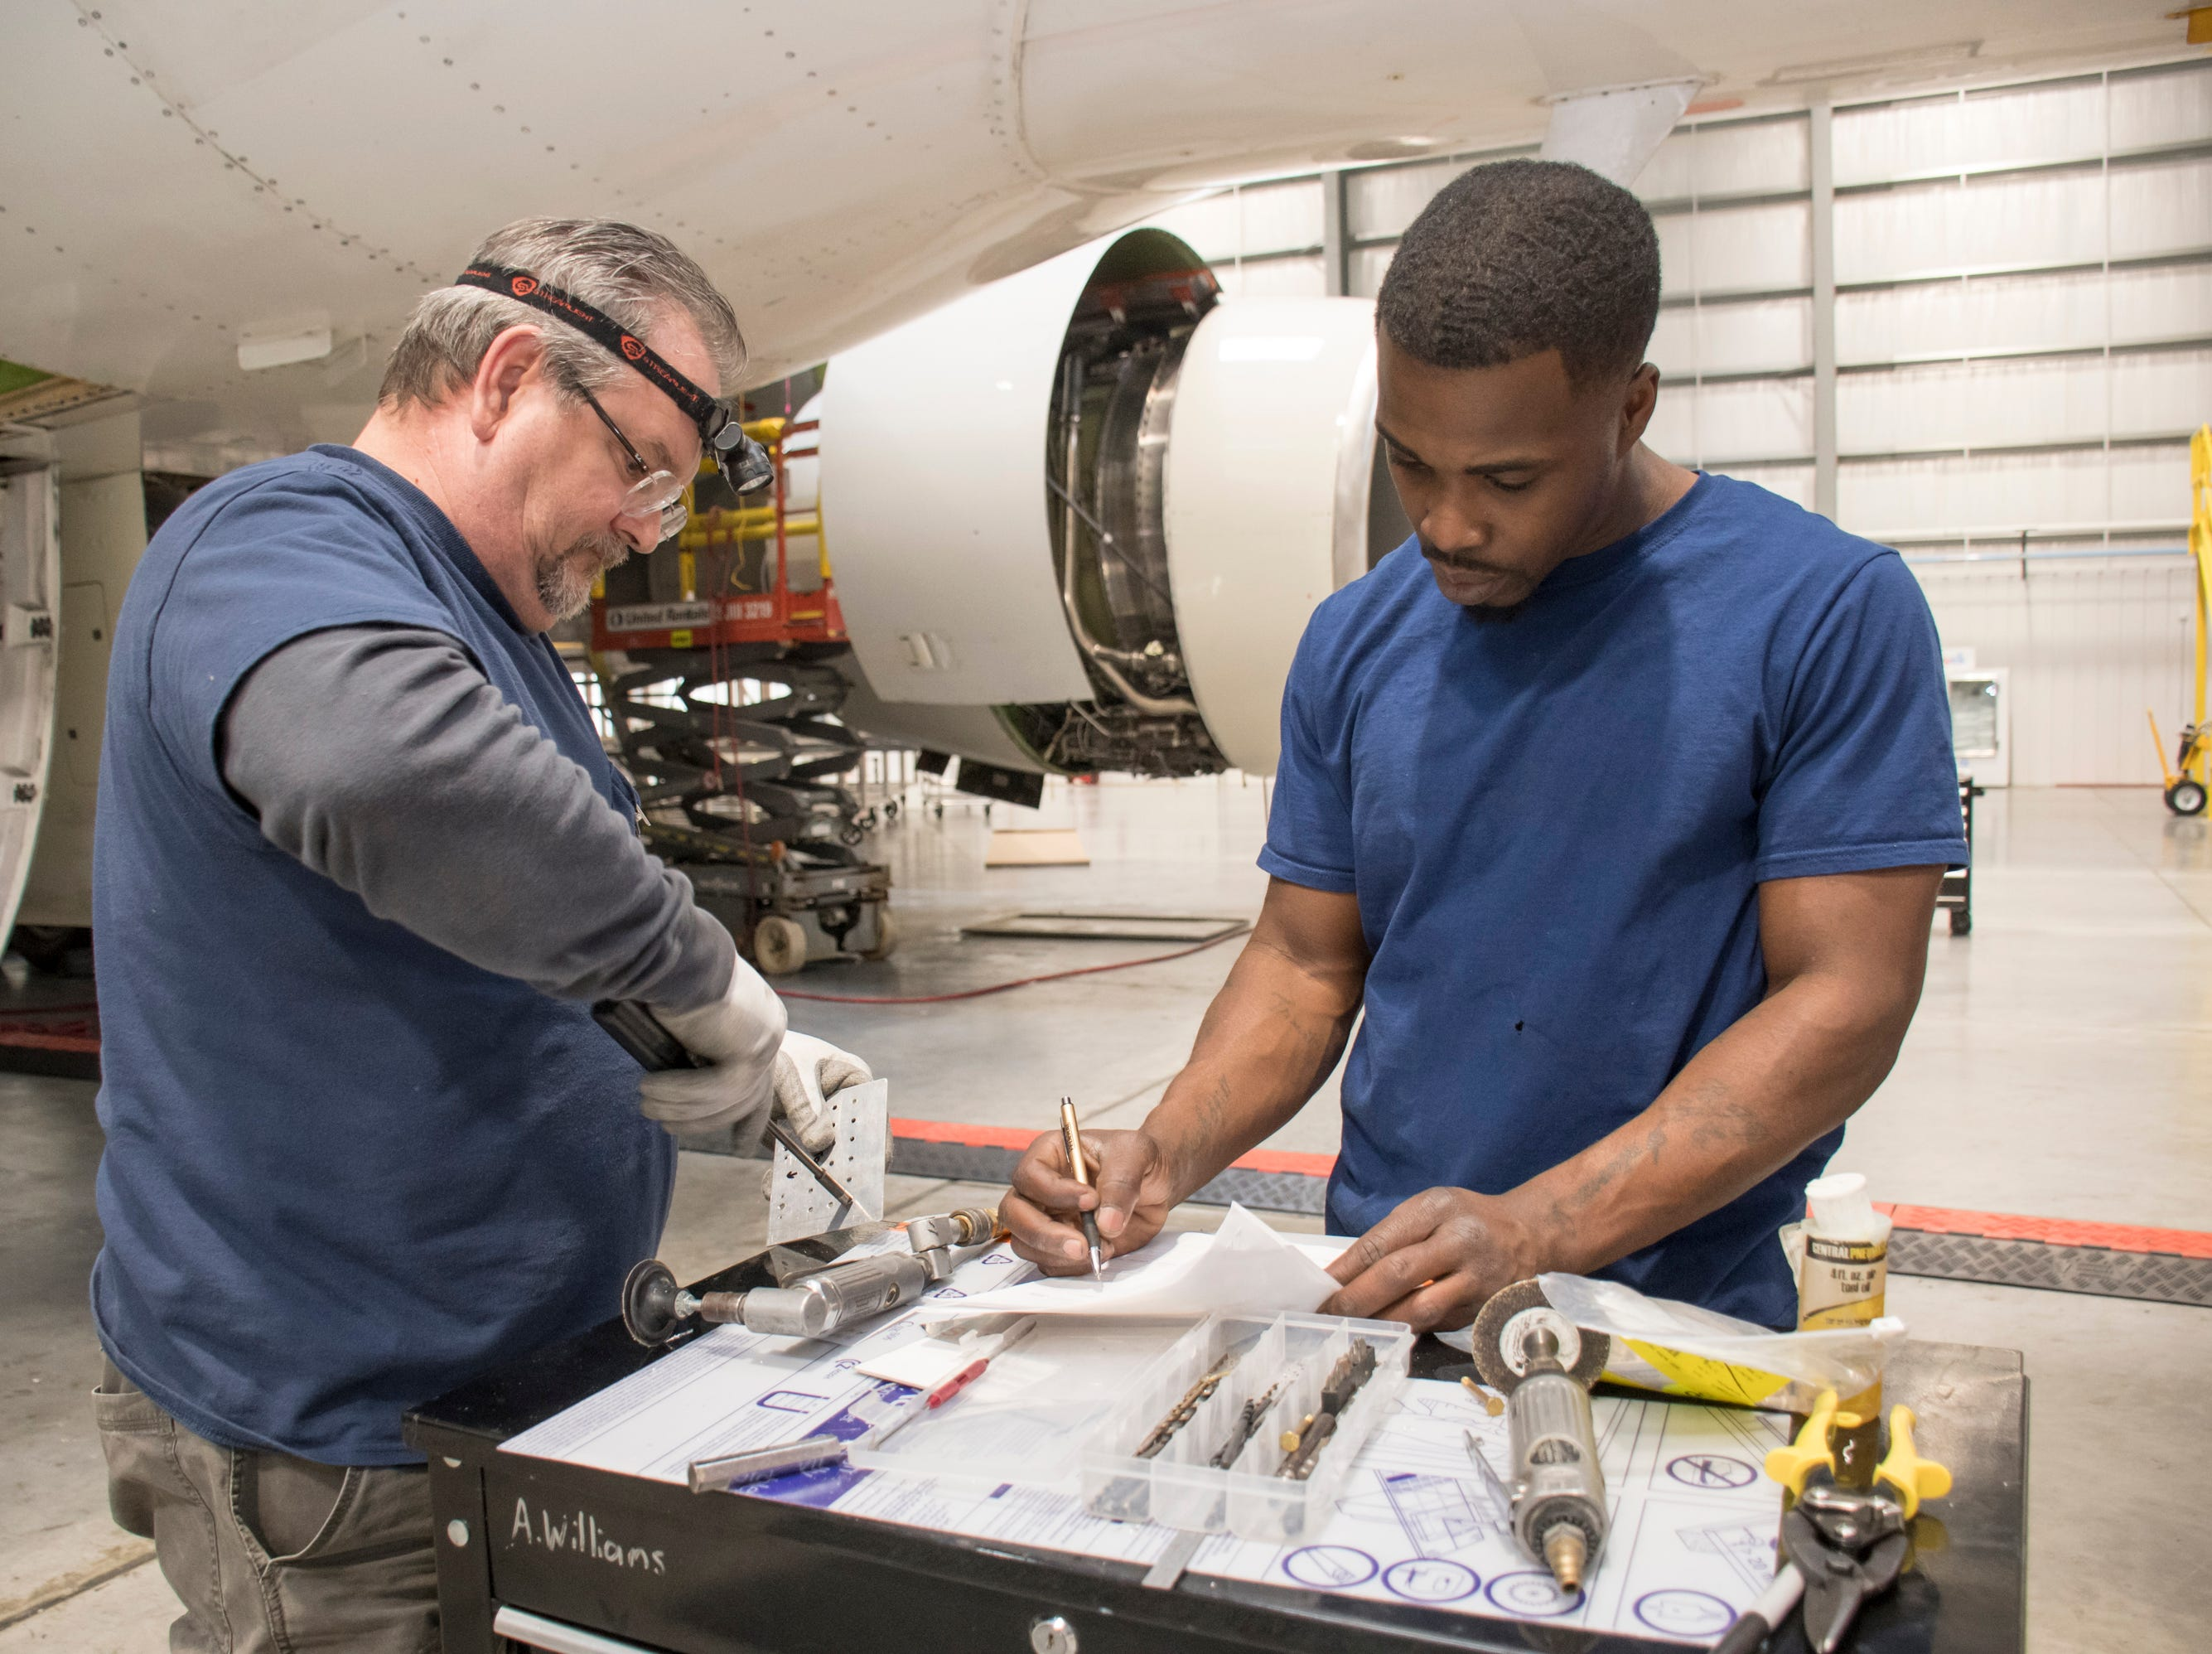 Sheet metal mechanics Greg Larson, left, and Antwonn Williams work at ST Engineering at the Pensacola International Airport in Pensacola on Friday, February 8, 2019.